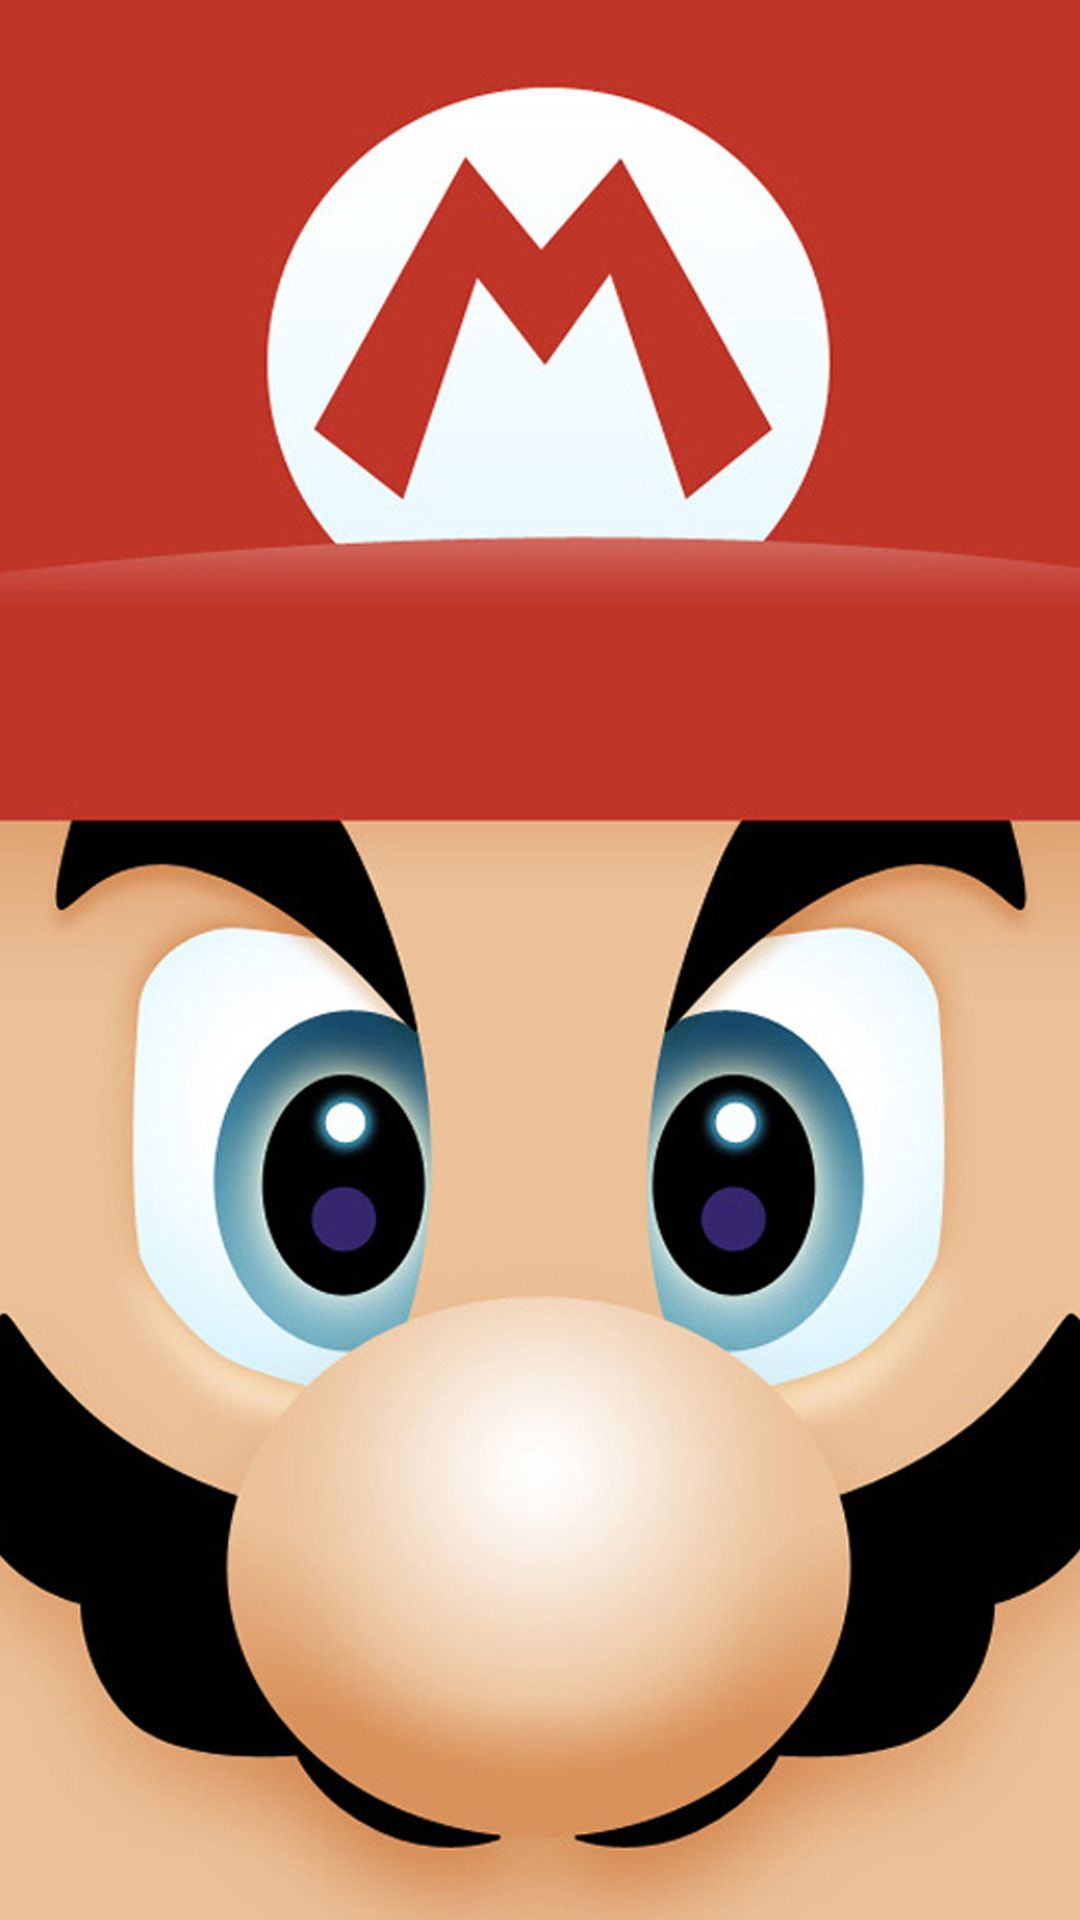 Wallpaper iphone mario bross - Cool Fond D Cran Hd Iphone Swag 438 Check More At Http